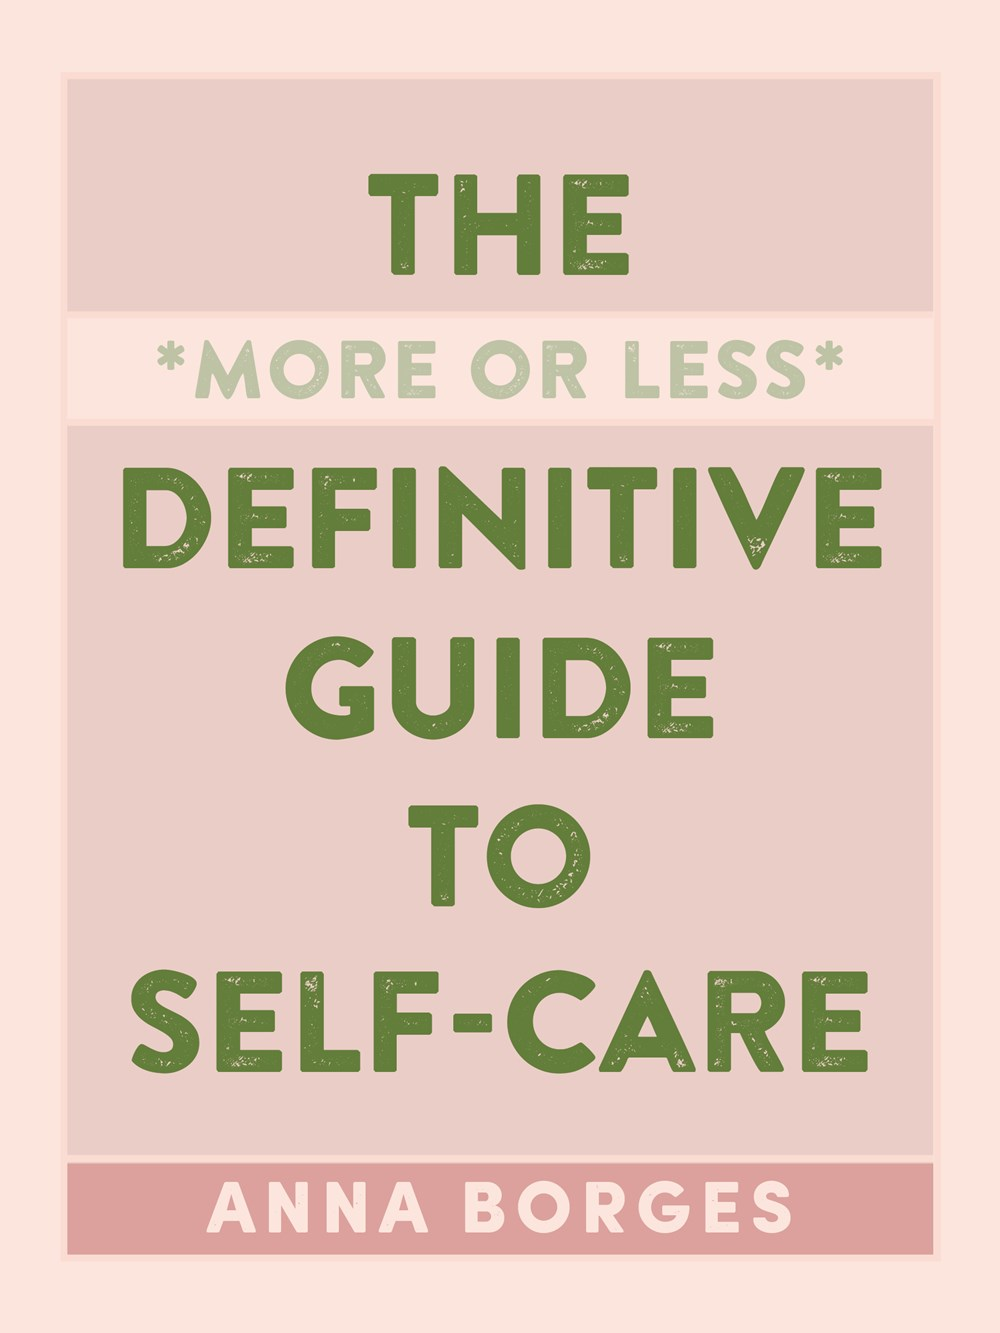 The More or Less Definitive Guide to Self-Care - The More or Less Definitive Guide to Self-Care is here to help you exist in the world. Borges gathers over 200 tips, activities, and stories (from experts and everyday people alike) into an A-to-Z list—from asking for help and burning negative thoughts to the importance of touch and catching some Zzz's. Make any day a little more OK with new skills in your self-care toolkit—and energy to show up for yourself.Read more here!